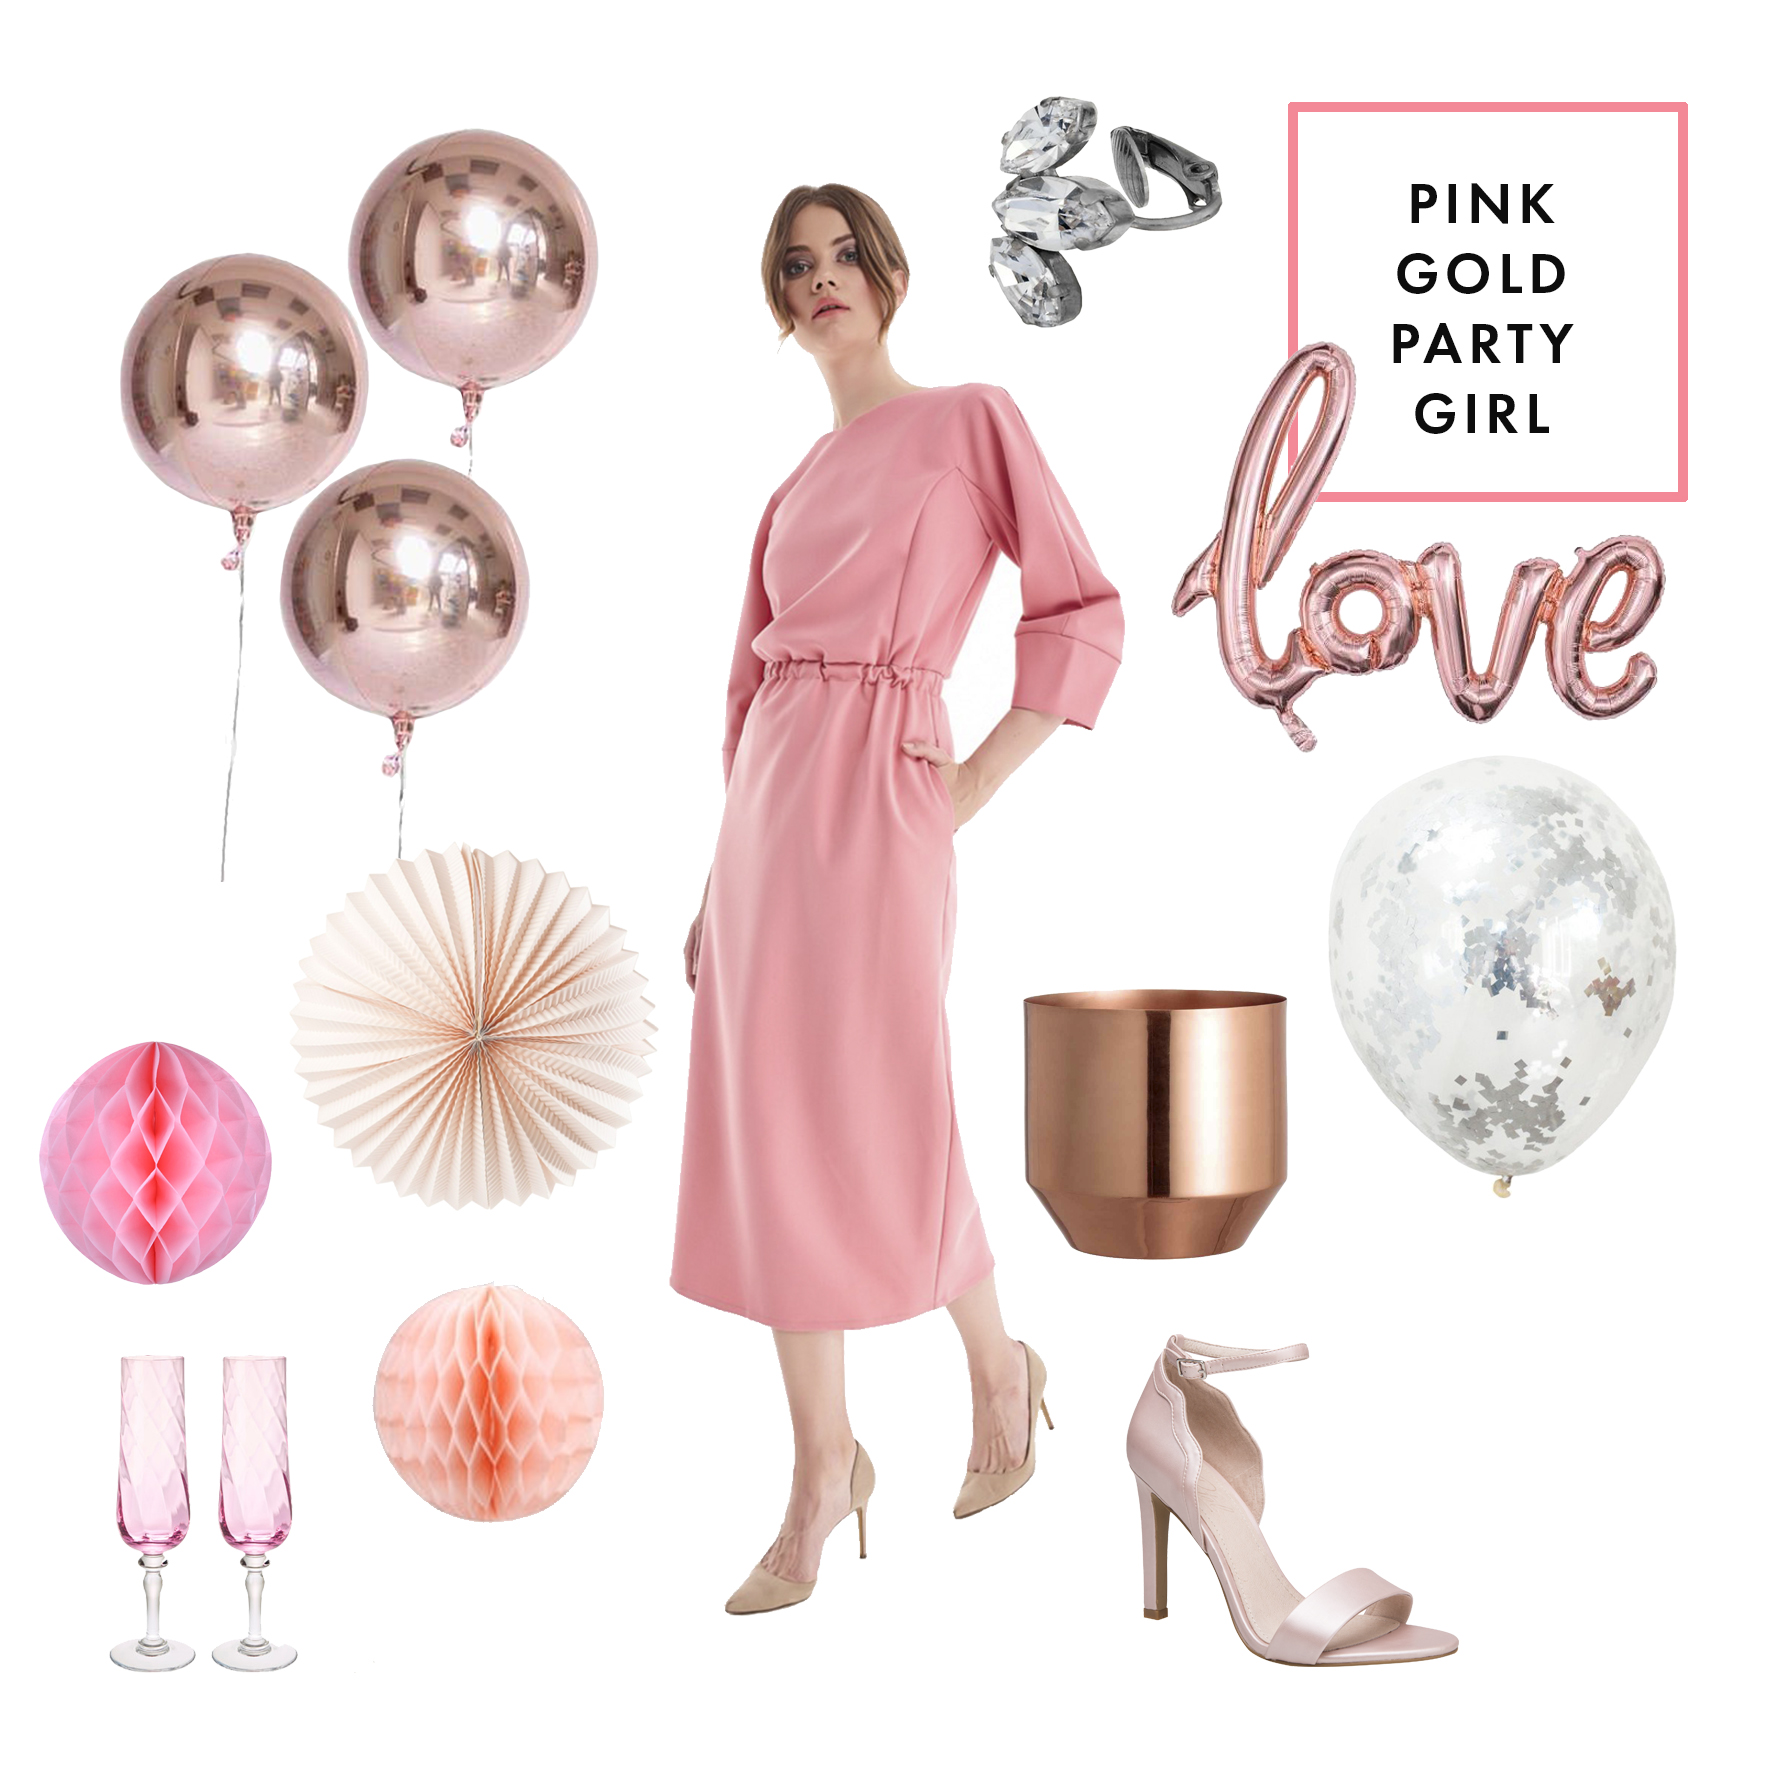 Pink gold Party Girl_1 copy.jpg